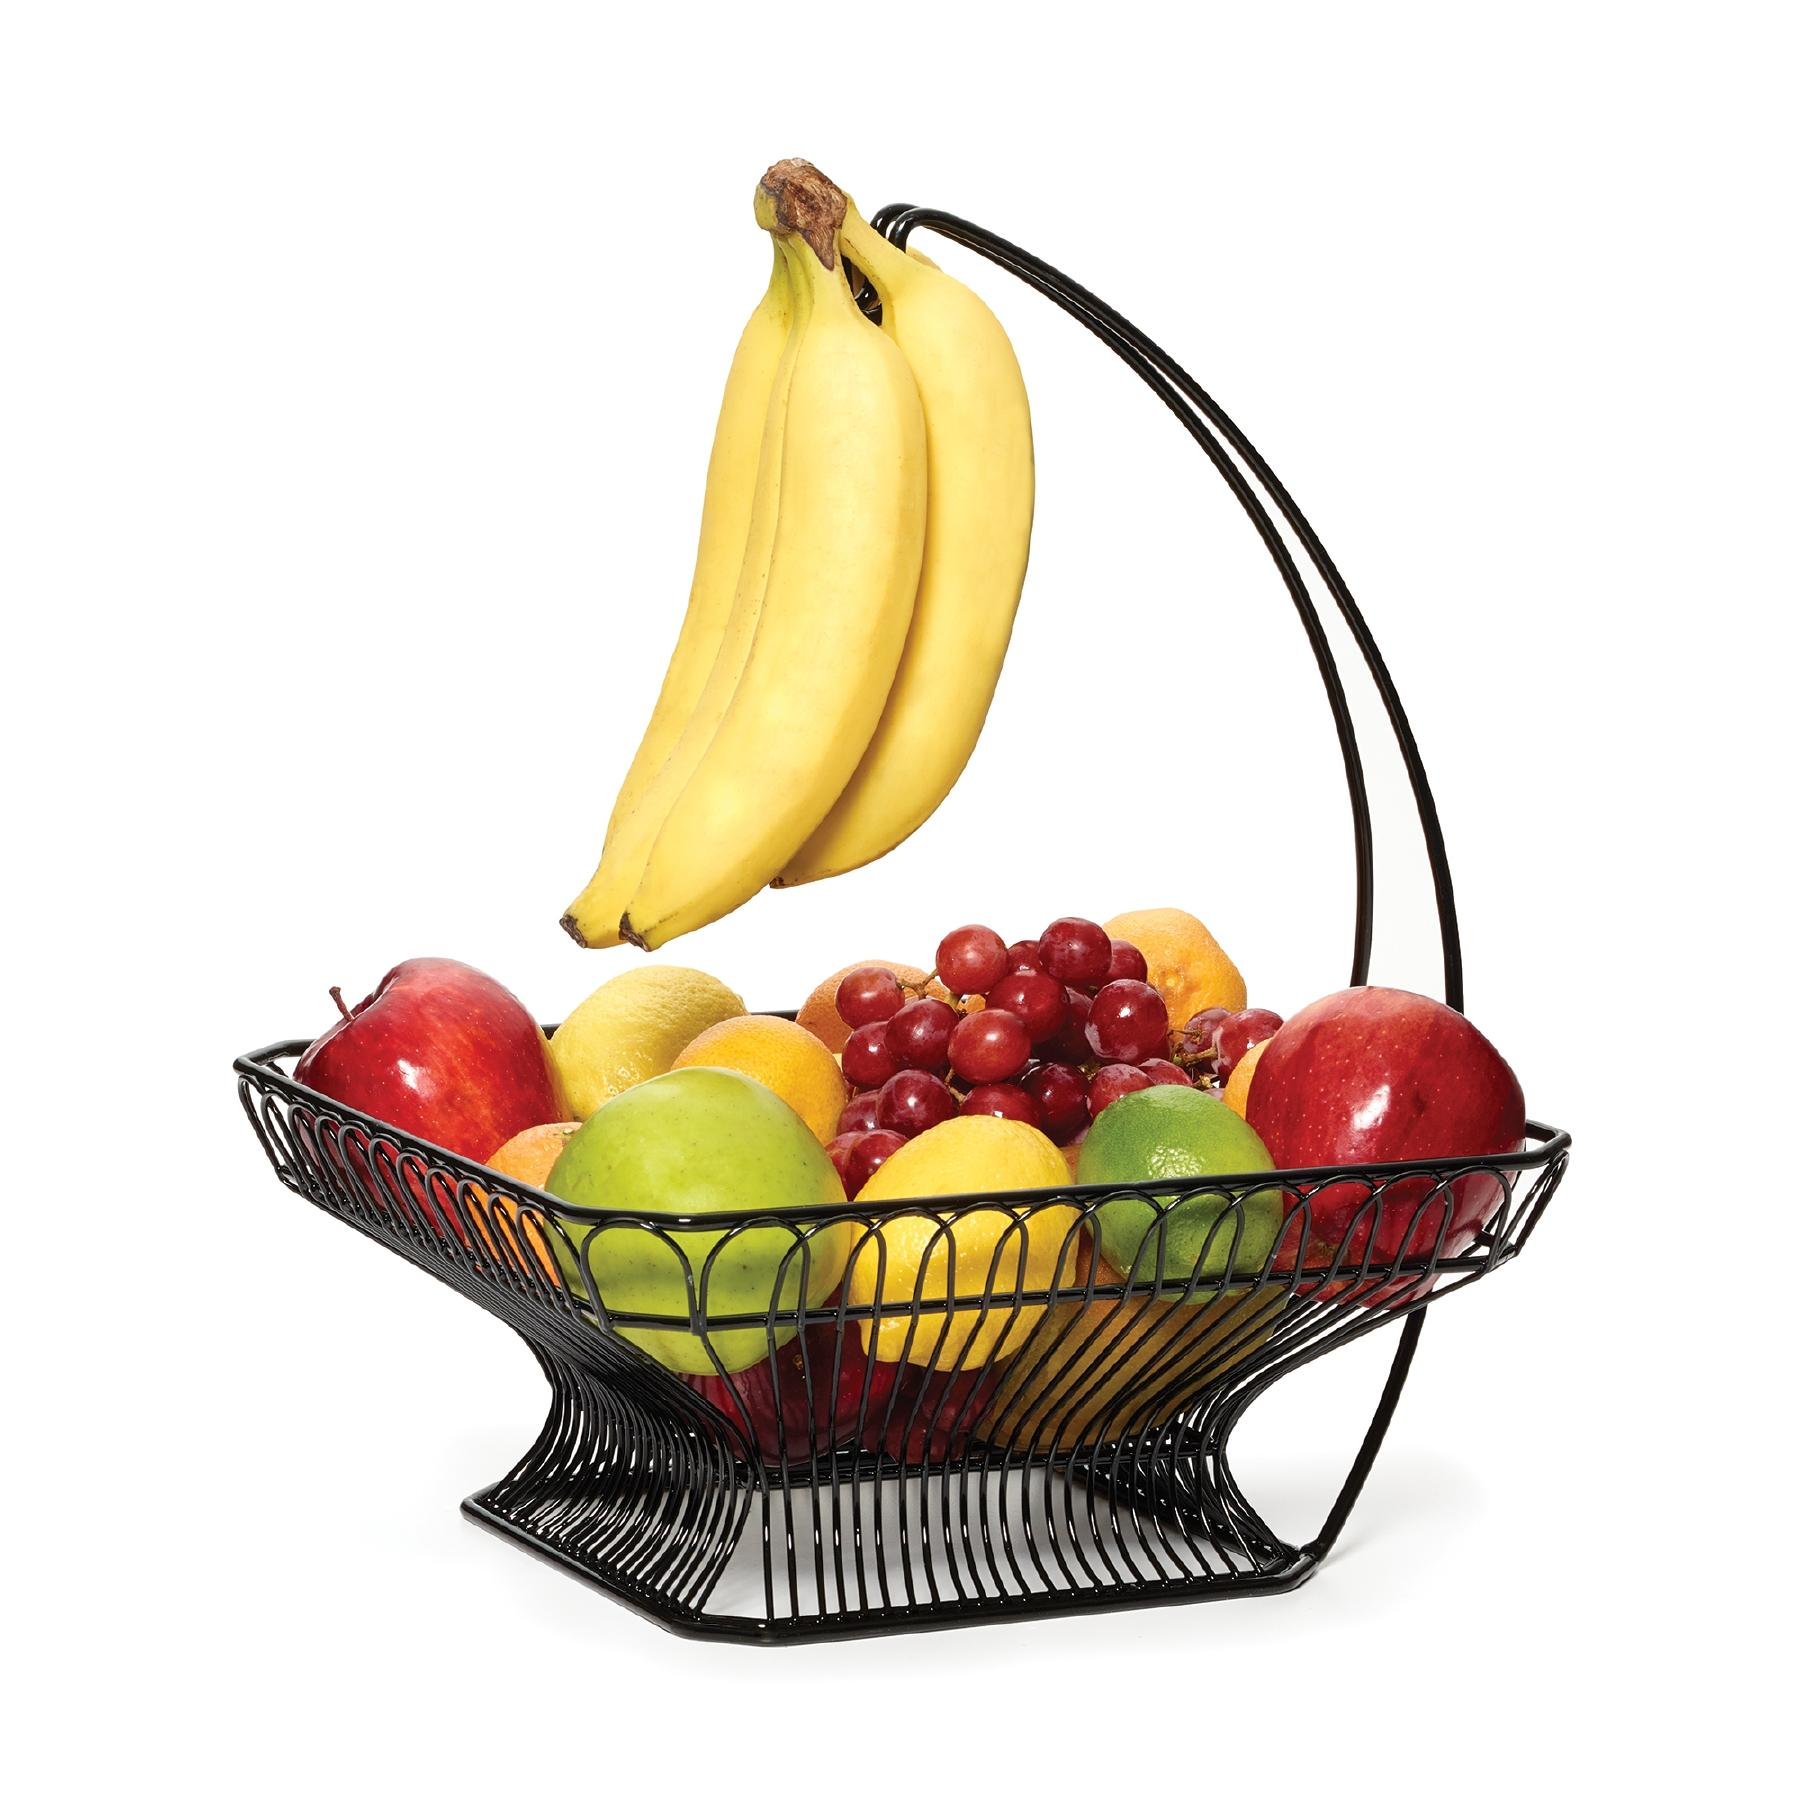 Fruit Bowl For Counter Amazon Gourmet Basics By Mikasa 3 Tier Metal Market